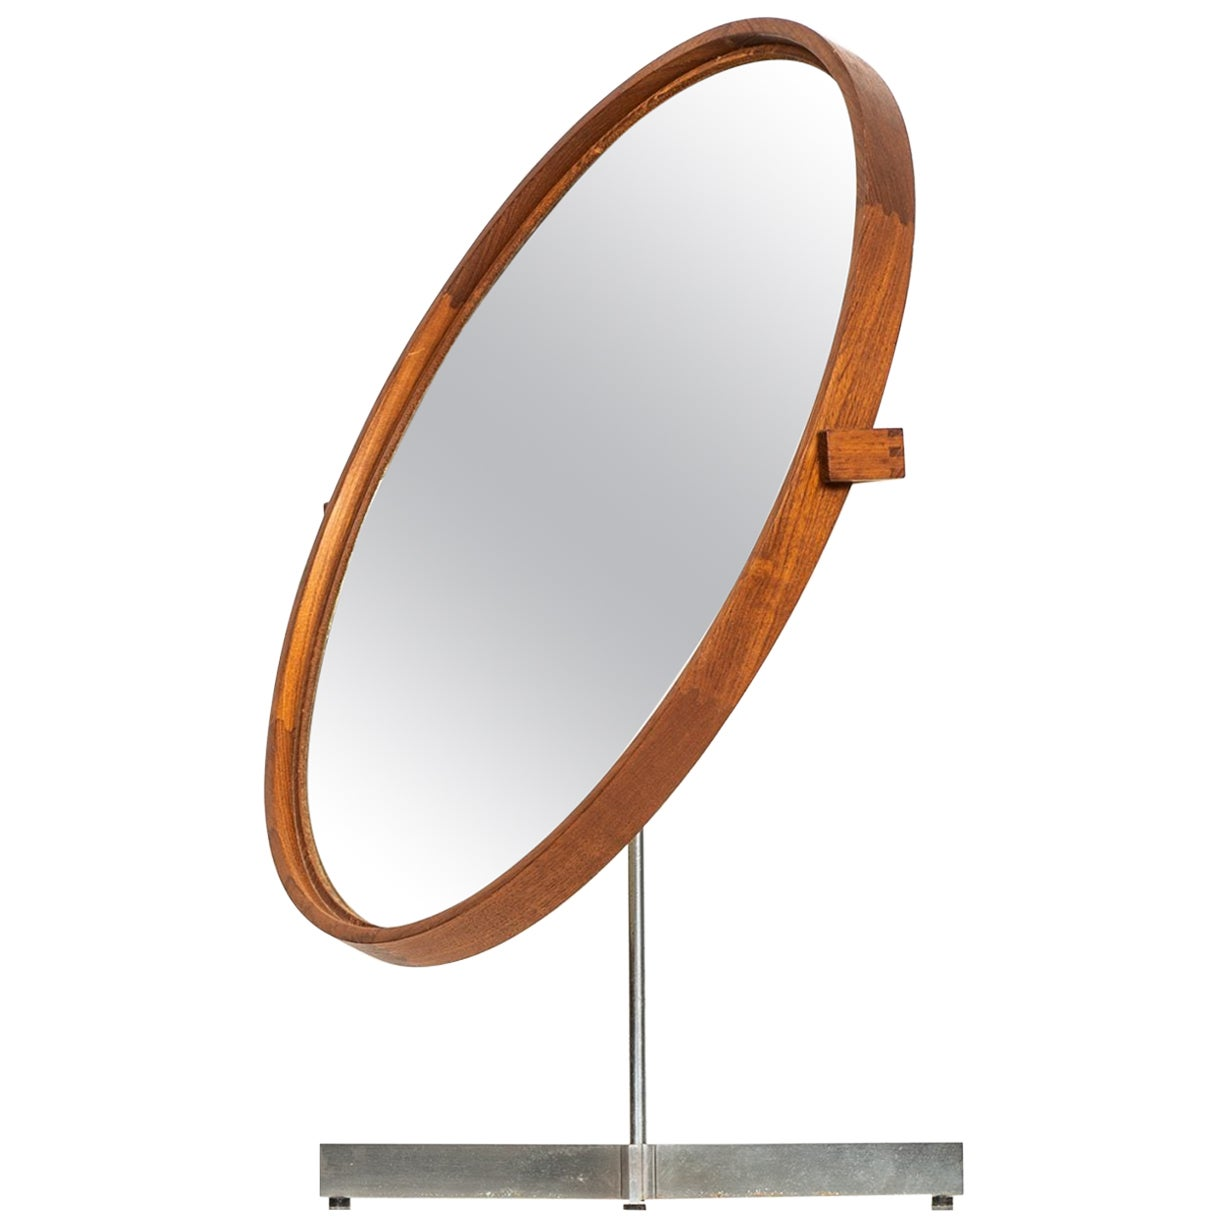 Uno & Östen Kristiansson Table Mirror Produced by Luxus in Vittsjö, Sweden